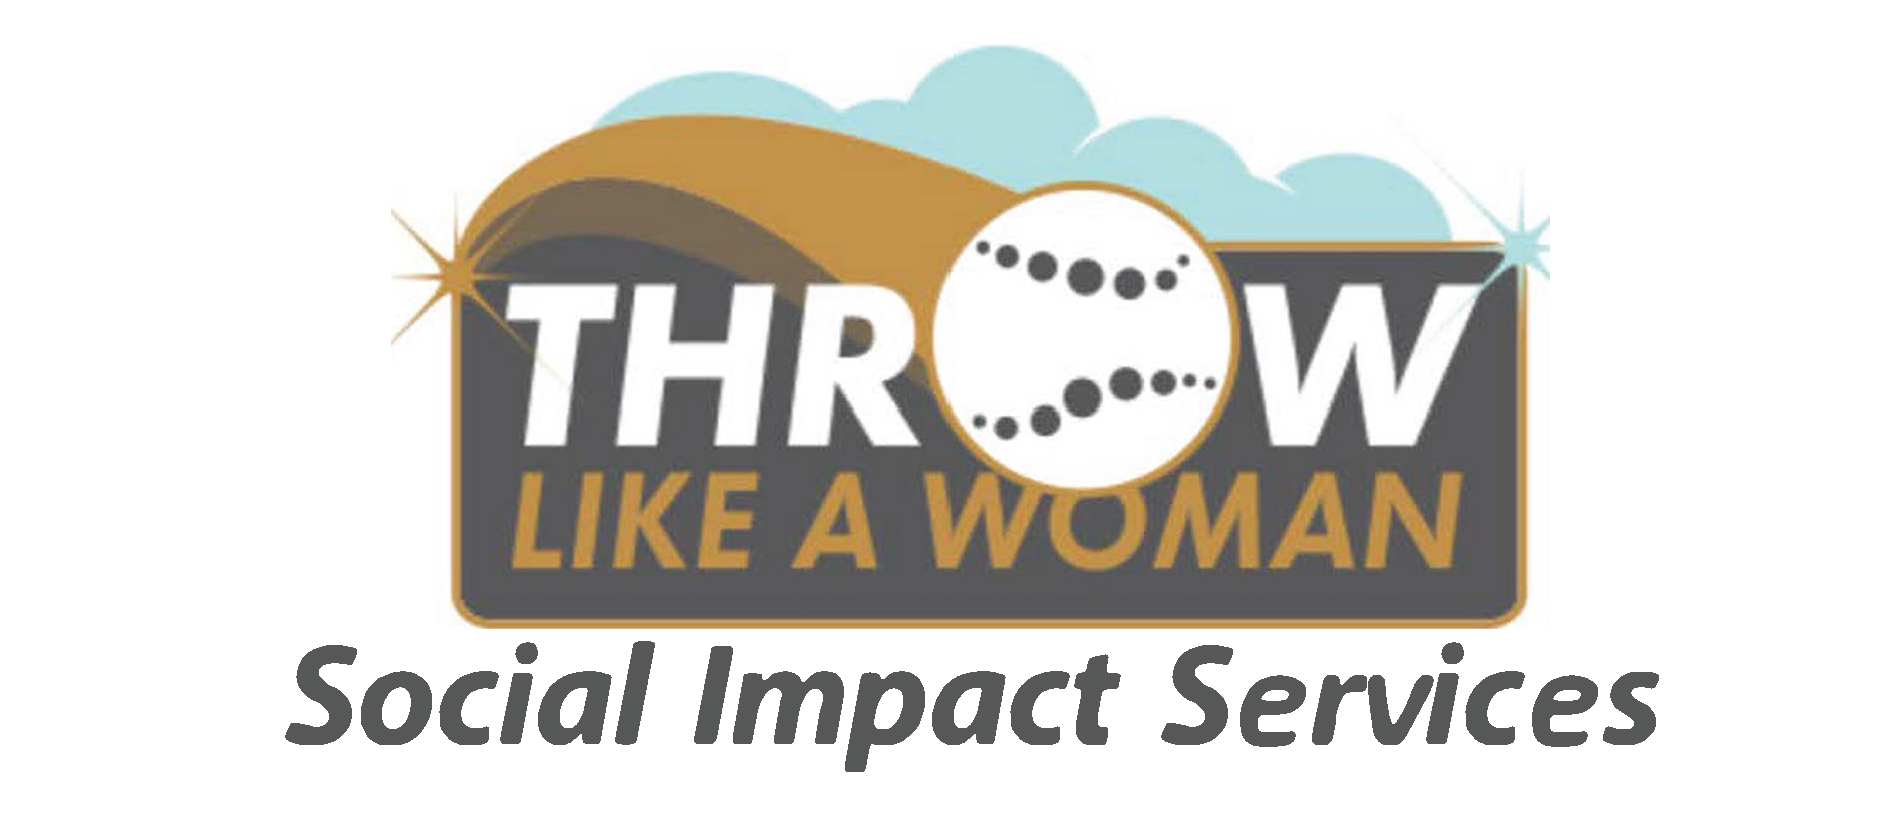 Throw Like a Woman, Social Impact Services